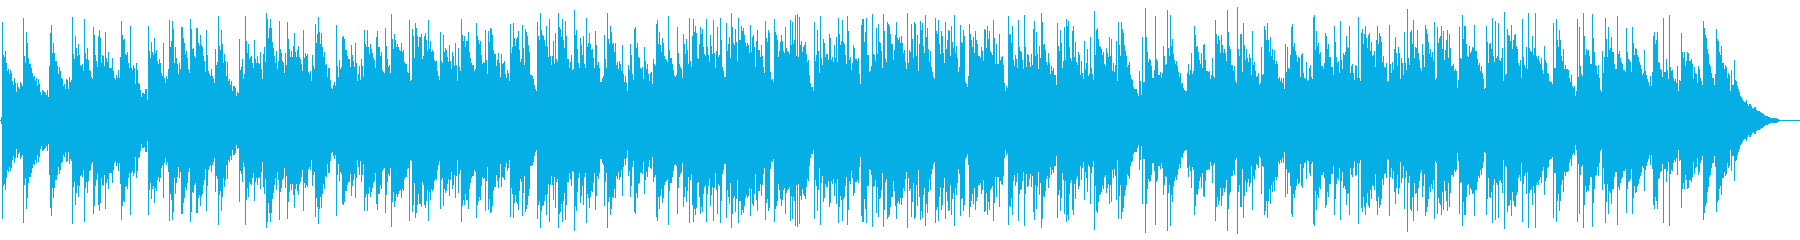 Slow and mellow acoustic sound's reproduced waveform